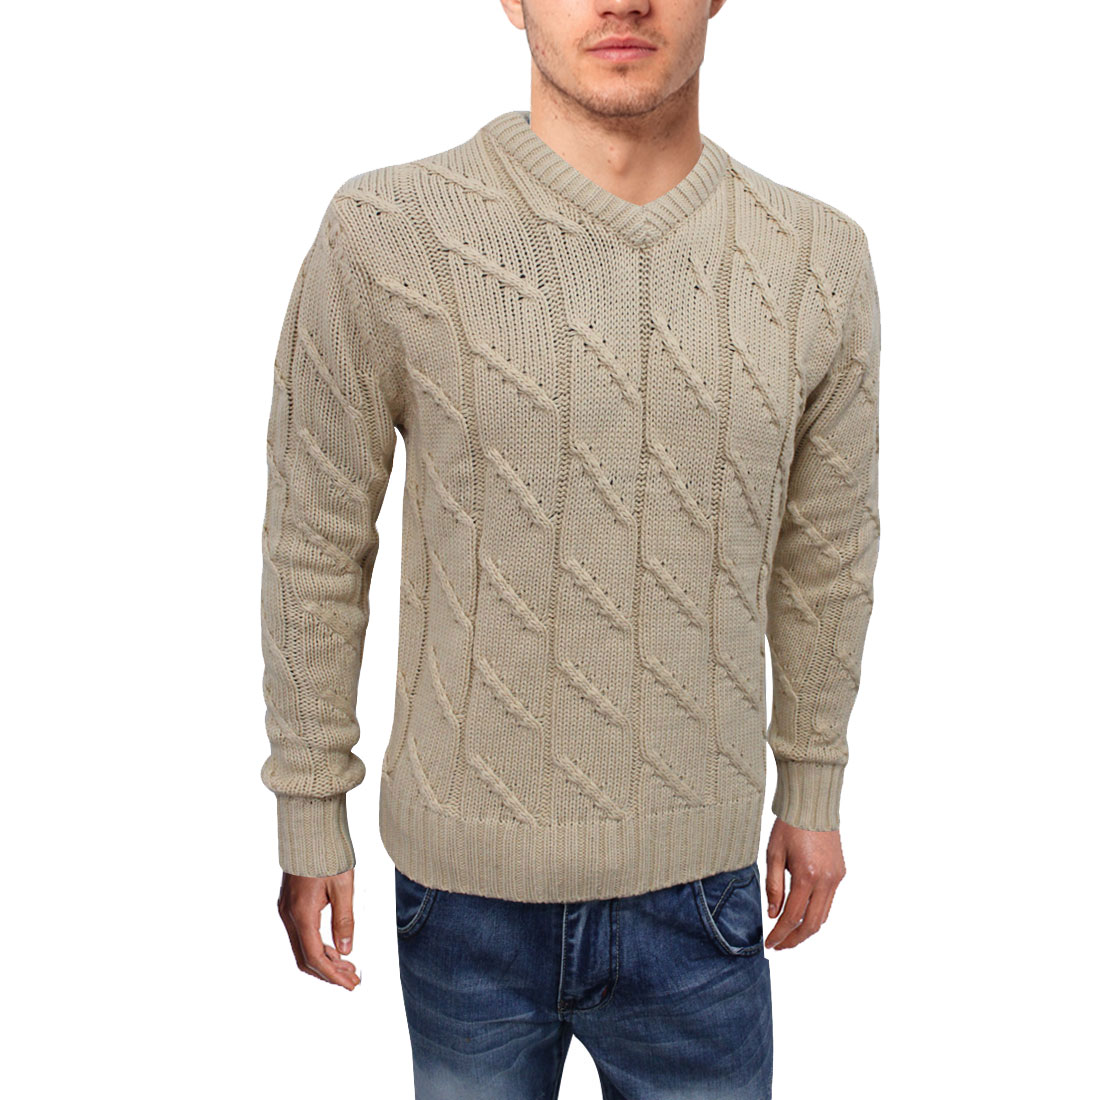 Mens Weave Cable Rib Design V Neck Long Sleeve Pullover Beige Sweater M